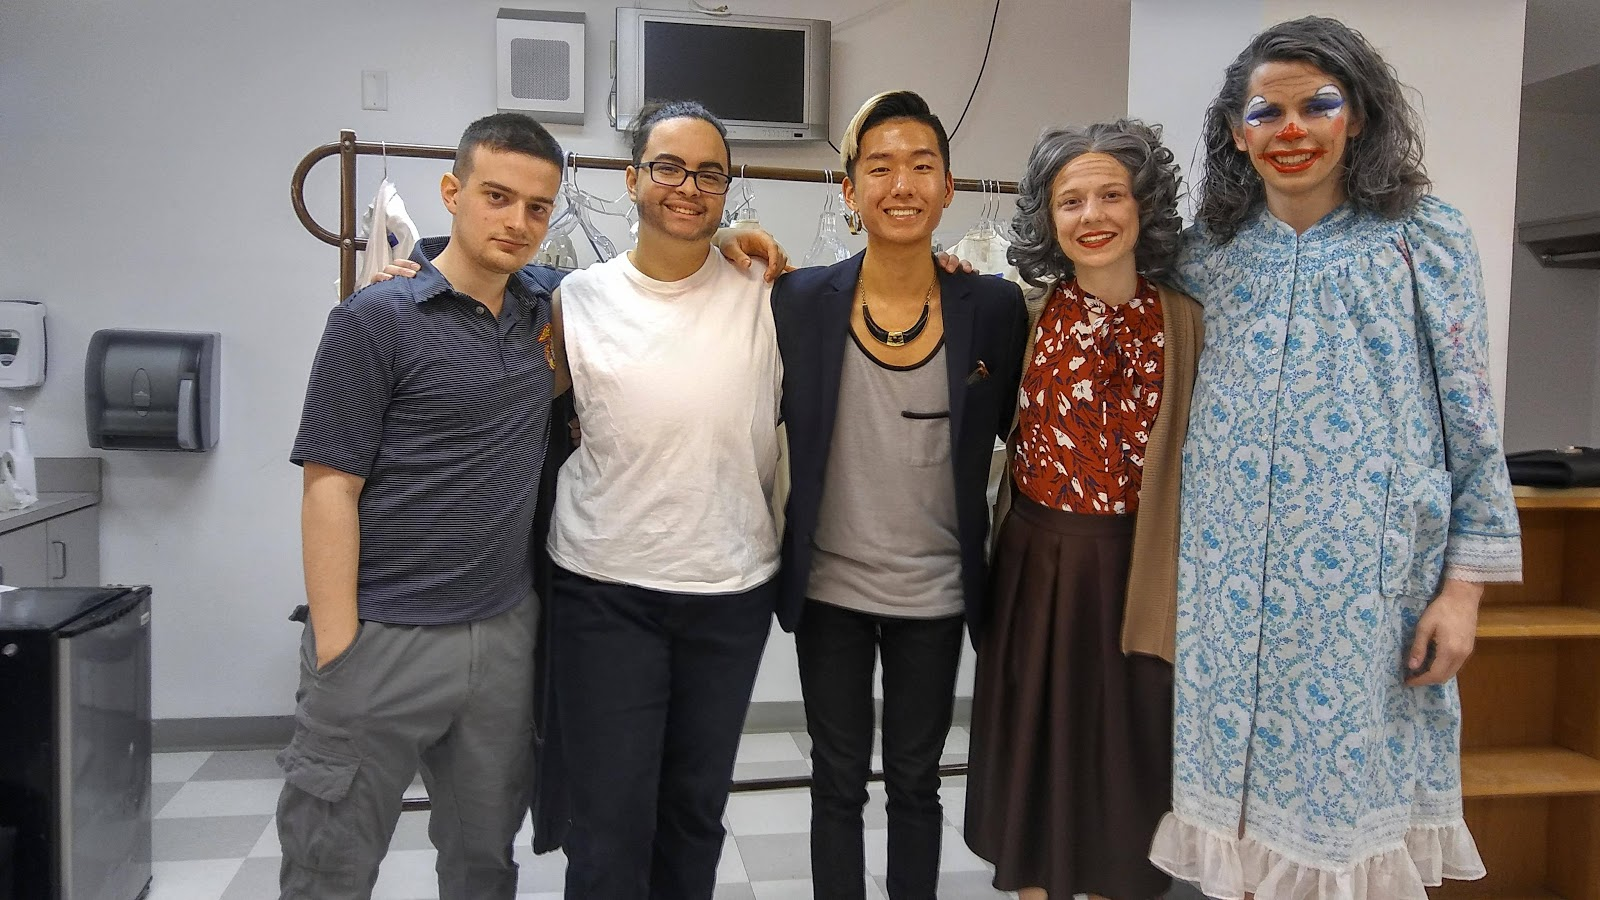 Pictured (from left to right): Oliver Lipton '18 as Isaac, Victoria/Abbas Lee-A-Yong '21 as Max, Director Wesley Han '18, Alex Kingsley '20 as Paige, and Jack McManus '21 as Arnold. Photograph provided by Lee-A-Yong.